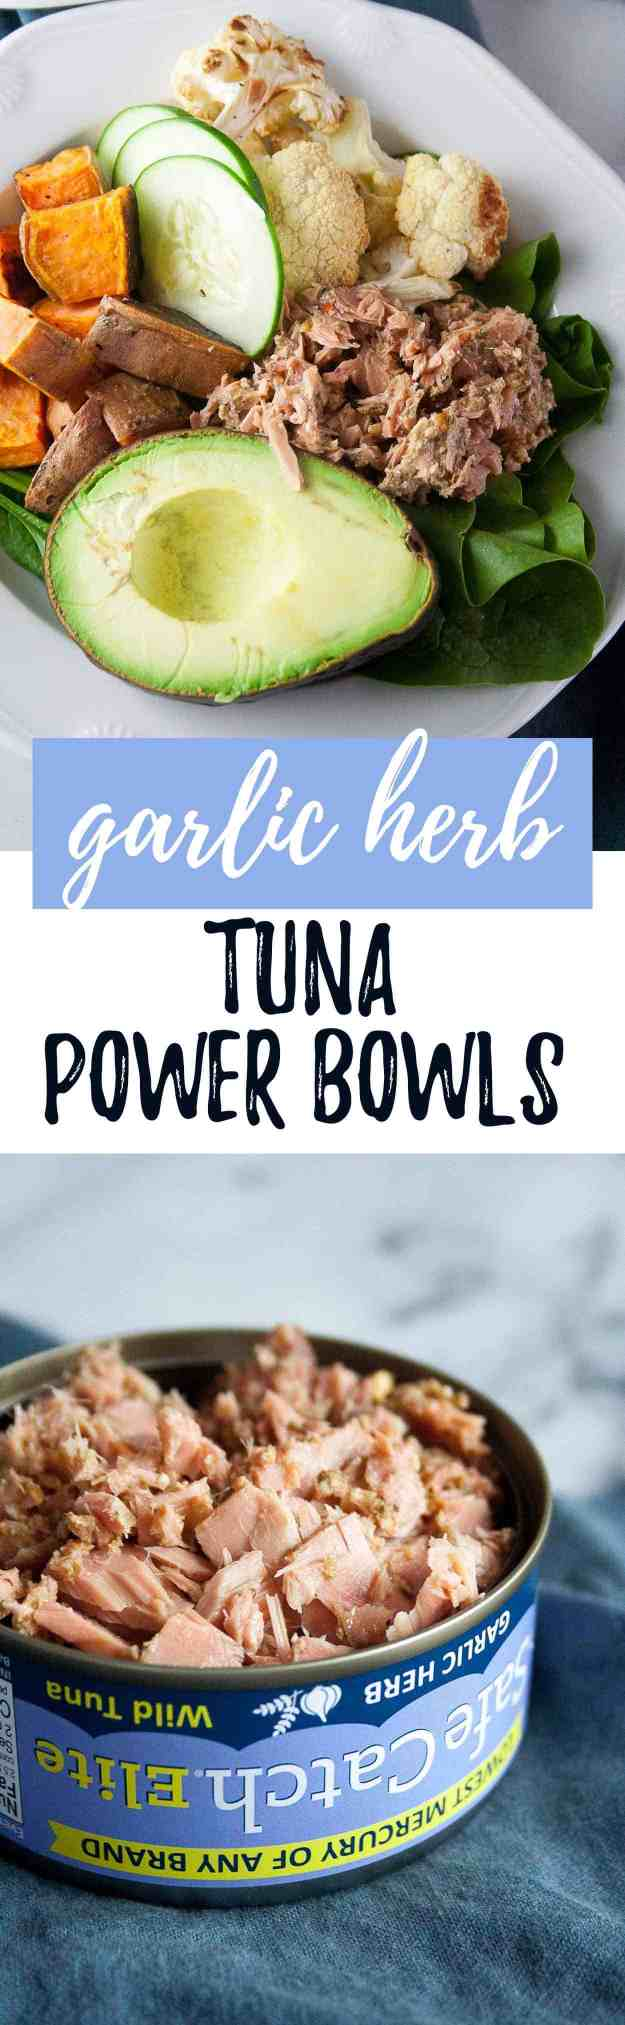 Garlic Herb Tuna Power Bowls | ad, Safe Catch, wild tuna, canned, recip, easy, healthy, gluten free, paleo, avocado | hungrybynature.com